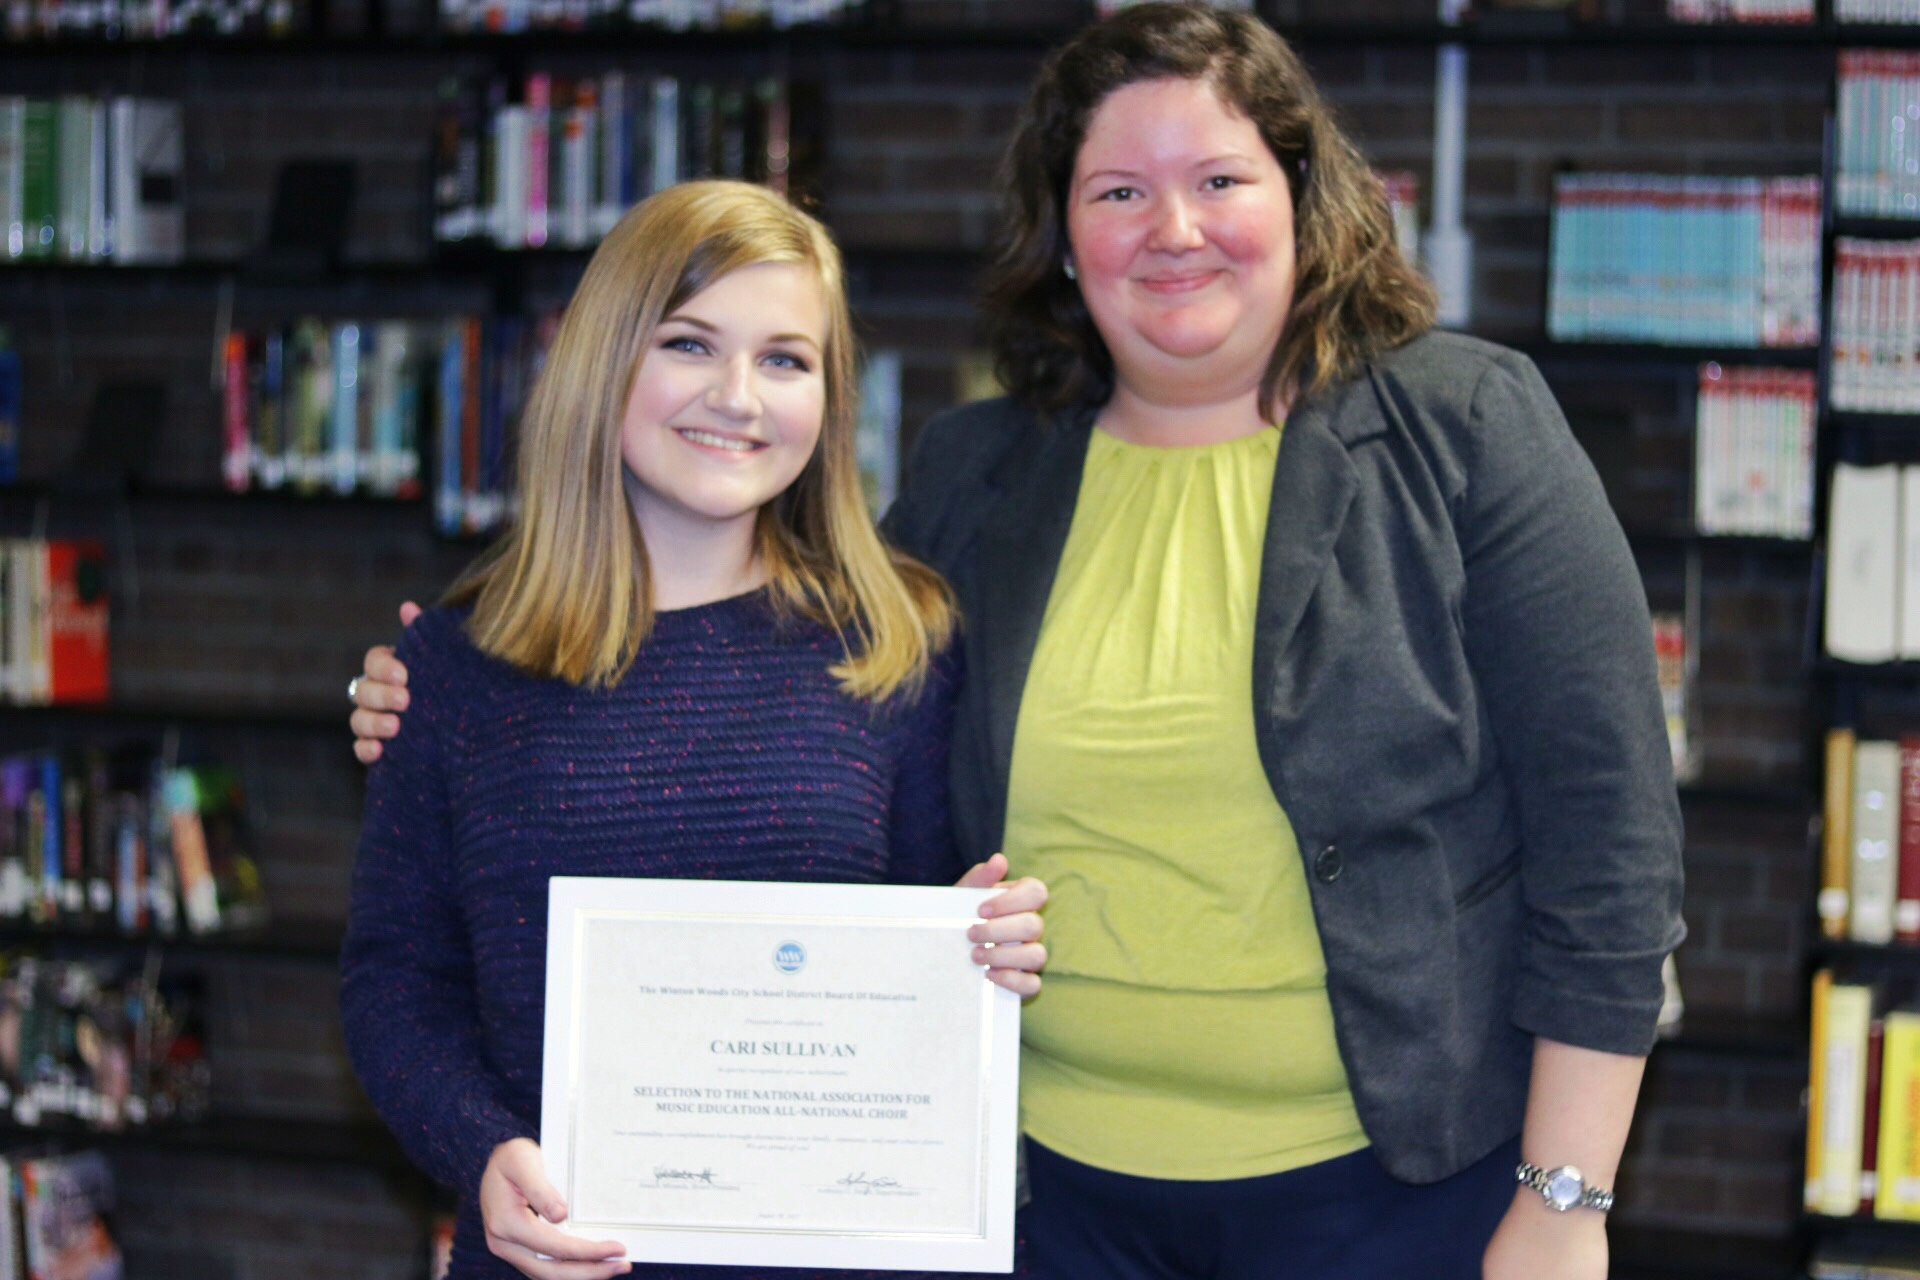 Winton Woods High School student Cari Sullivan shown with Board President Jessica Miranda after being honored at August Board meeting.